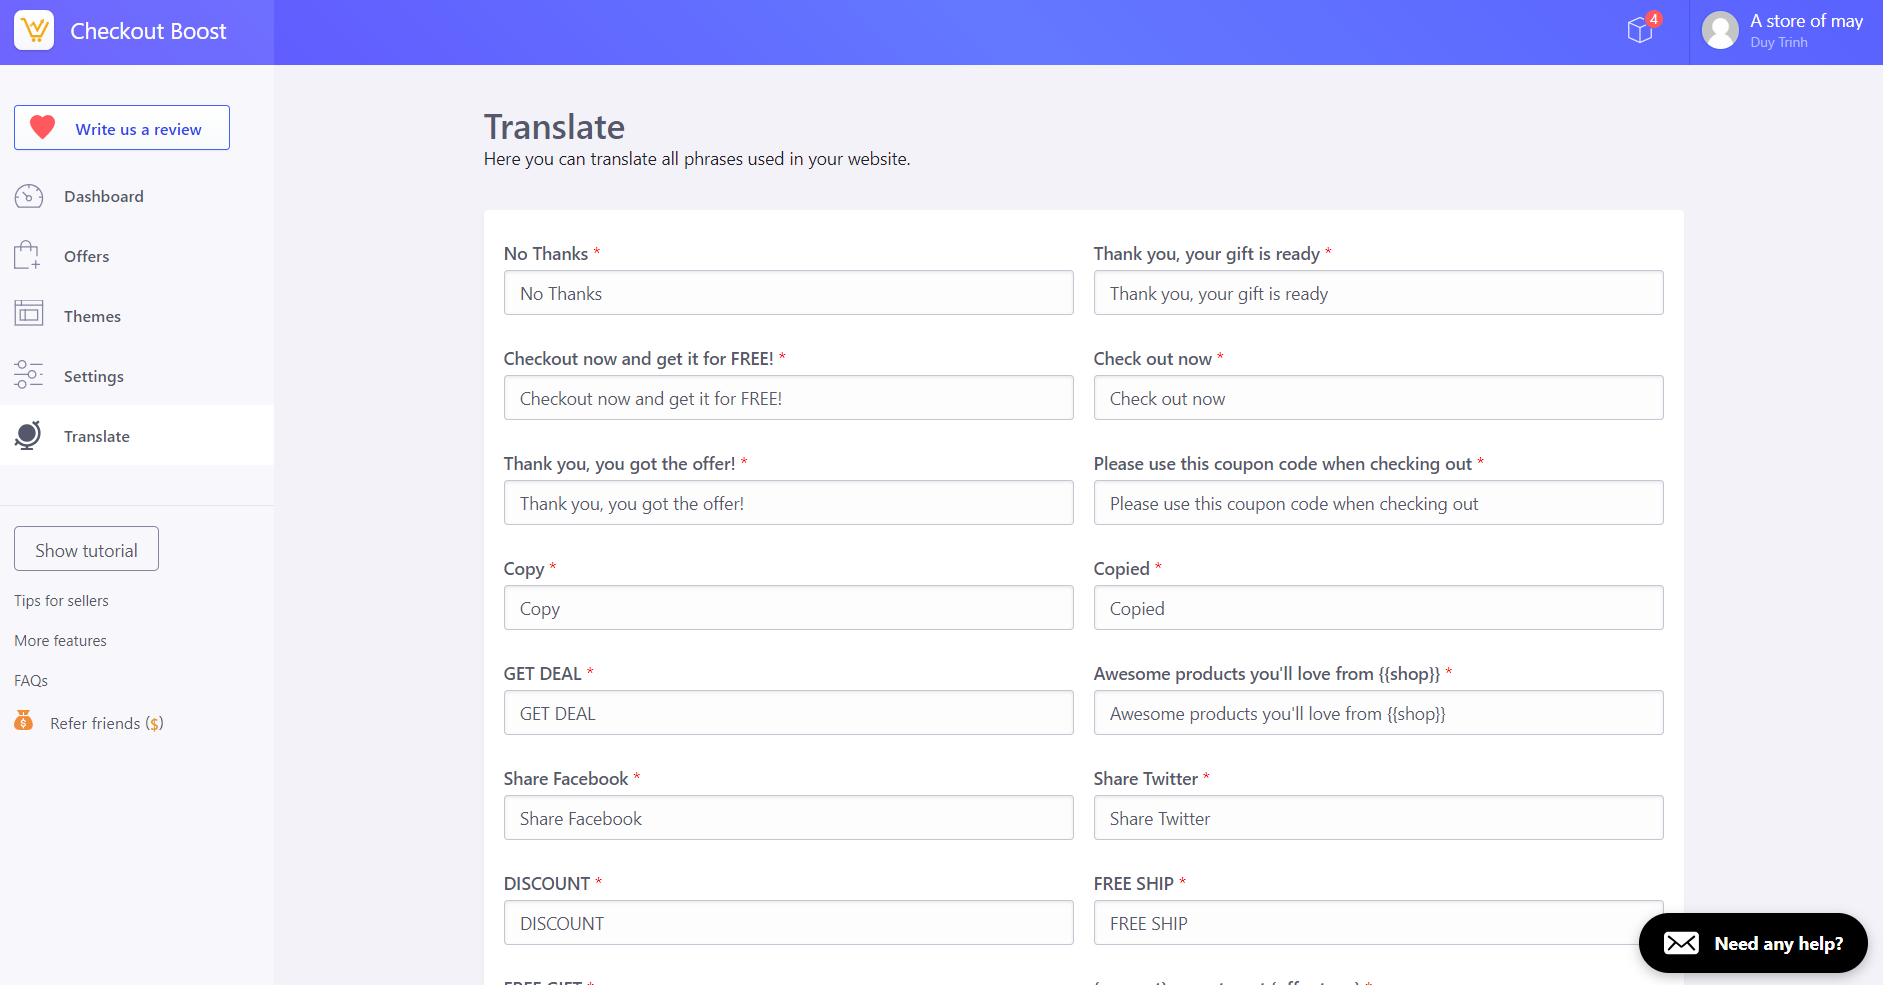 Checkout Boost - Translate